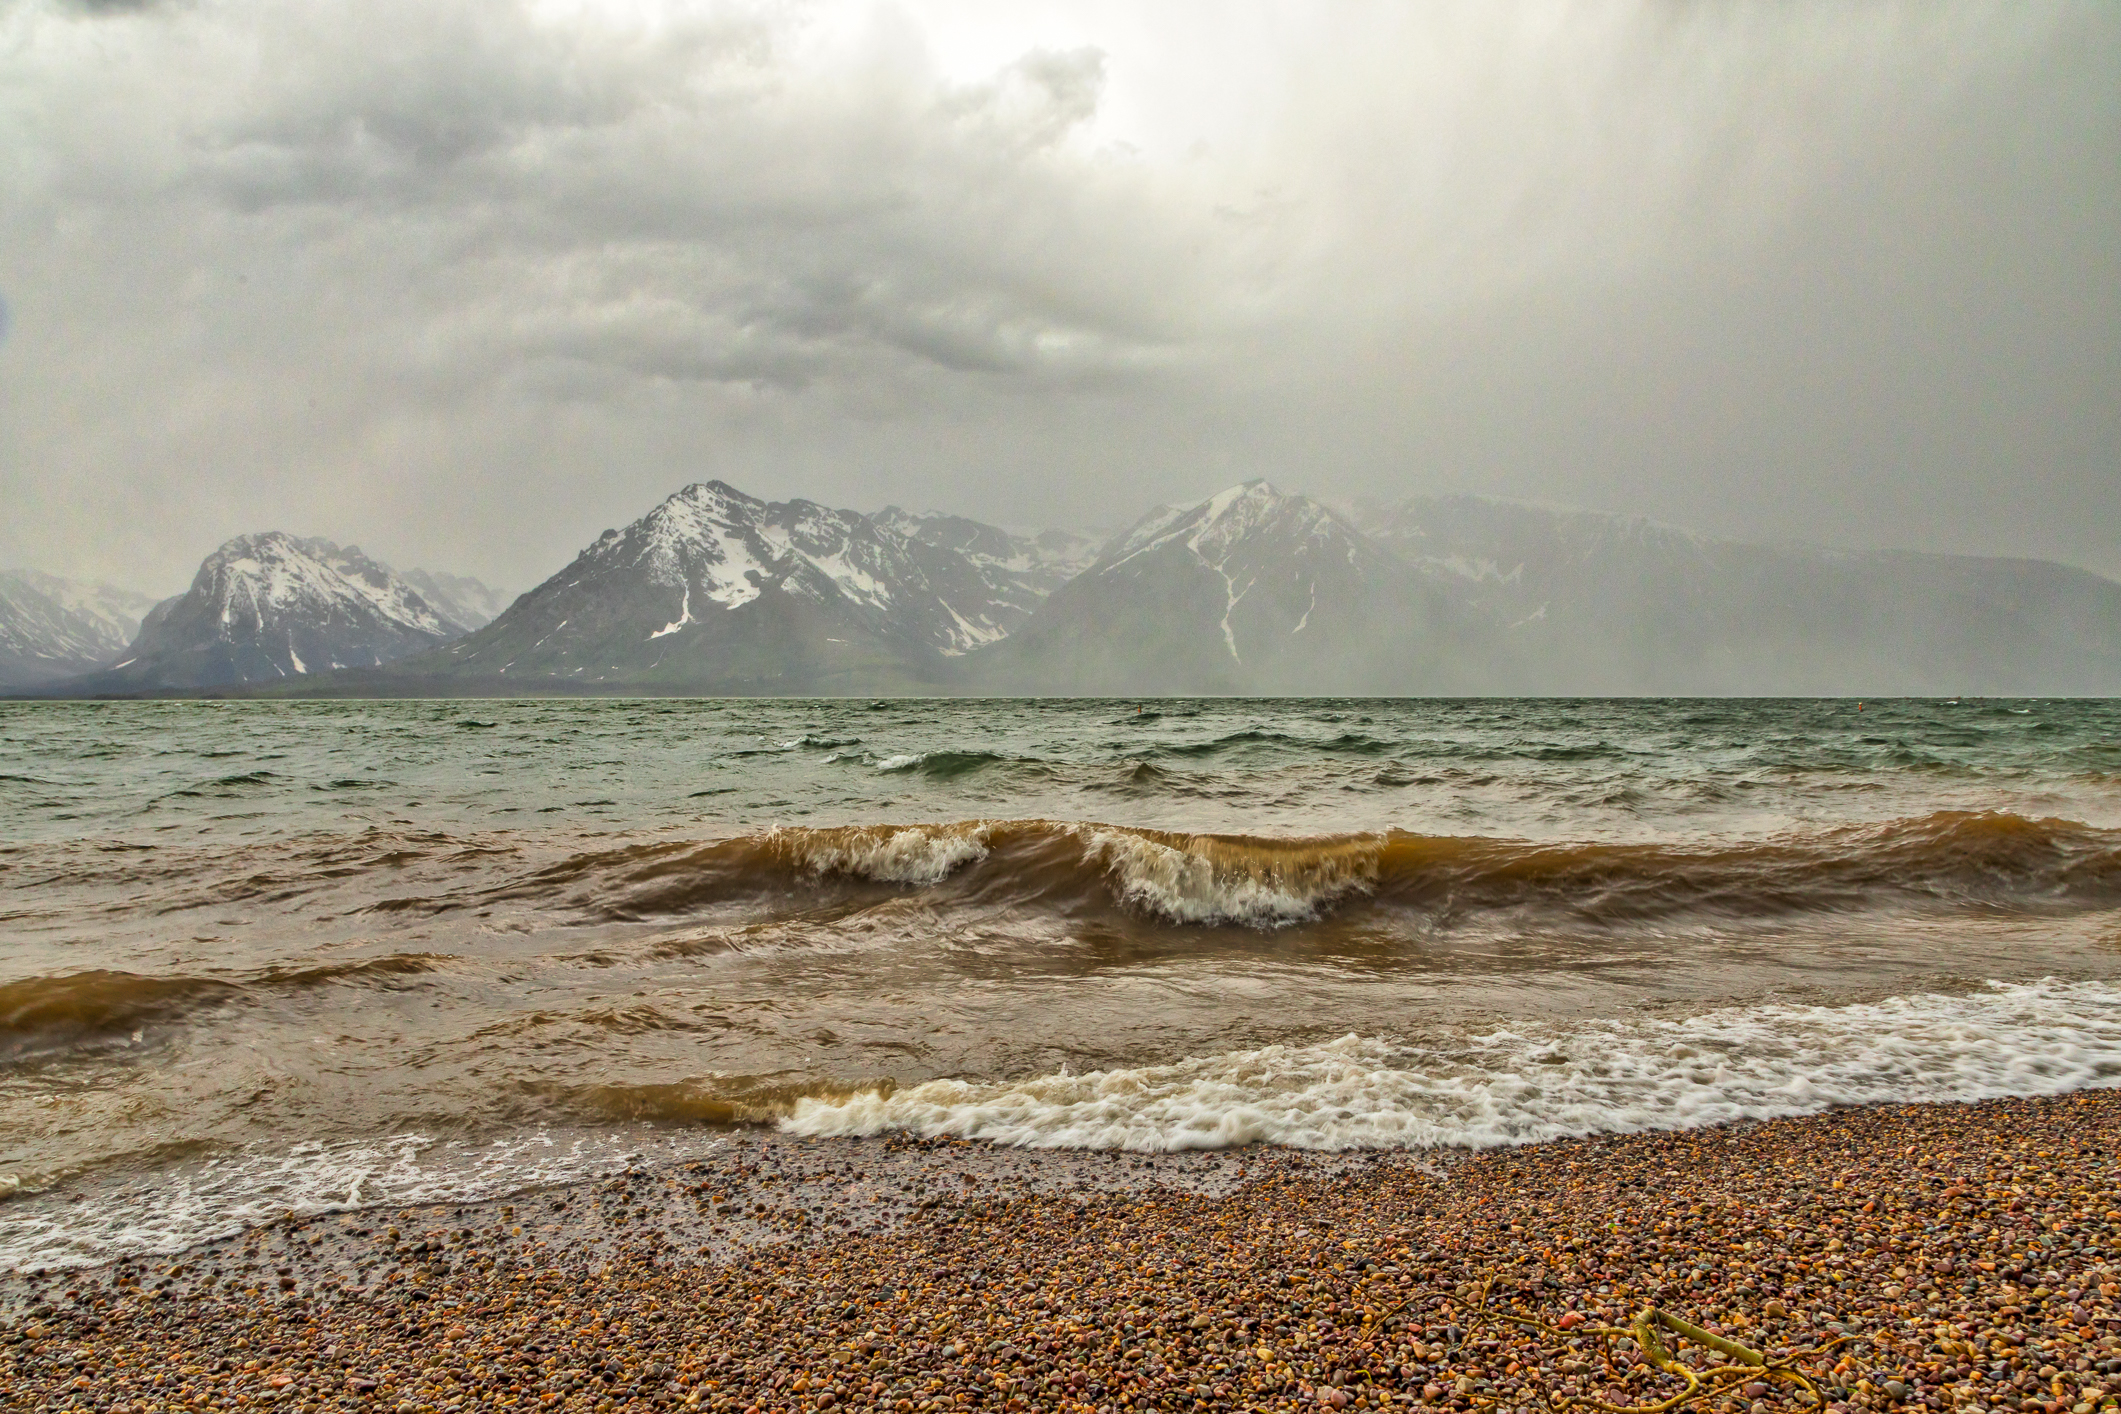 Colter Bay, Image # 3585